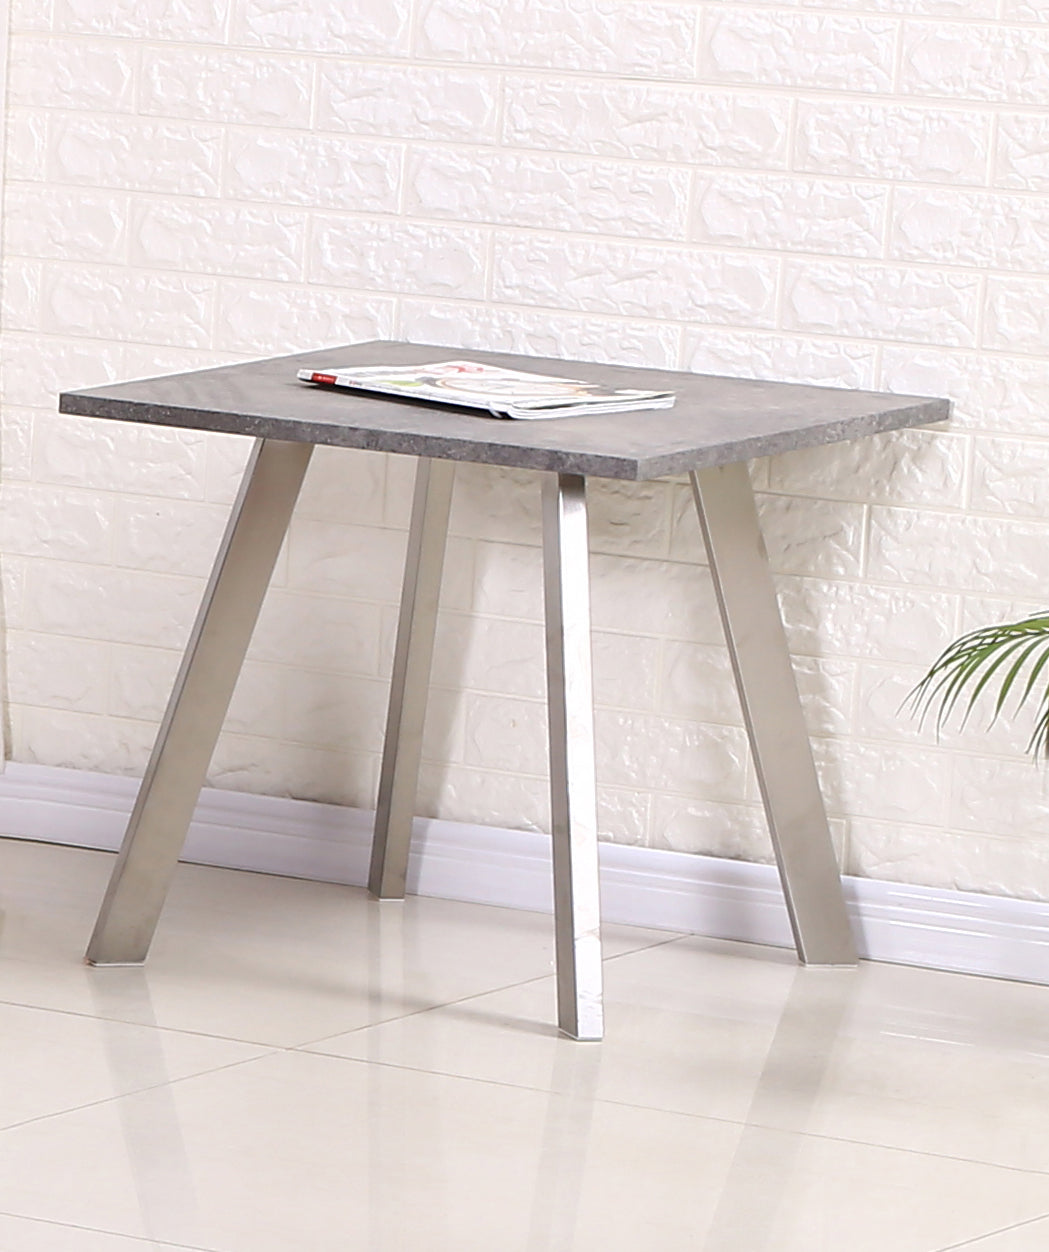 Calipso Lamp Table Concrete with Brushed Stainless Steel Legs